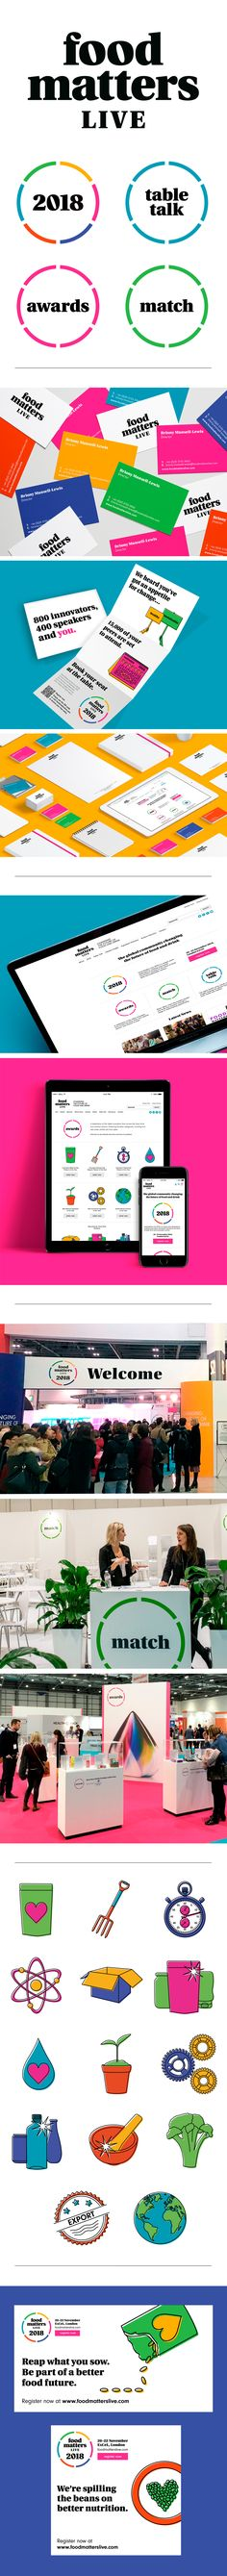 A clear brand architecture for Food Matters Live, providing structure and meaning for each of it's platforms, with a vibrant new brand identity and visual language. This extended to all touch points including digital, web and campaign communications. Brand Identity, Branding, Brand Architecture, Digital Web, Design Agency, Platforms, Meant To Be, Campaign, Language